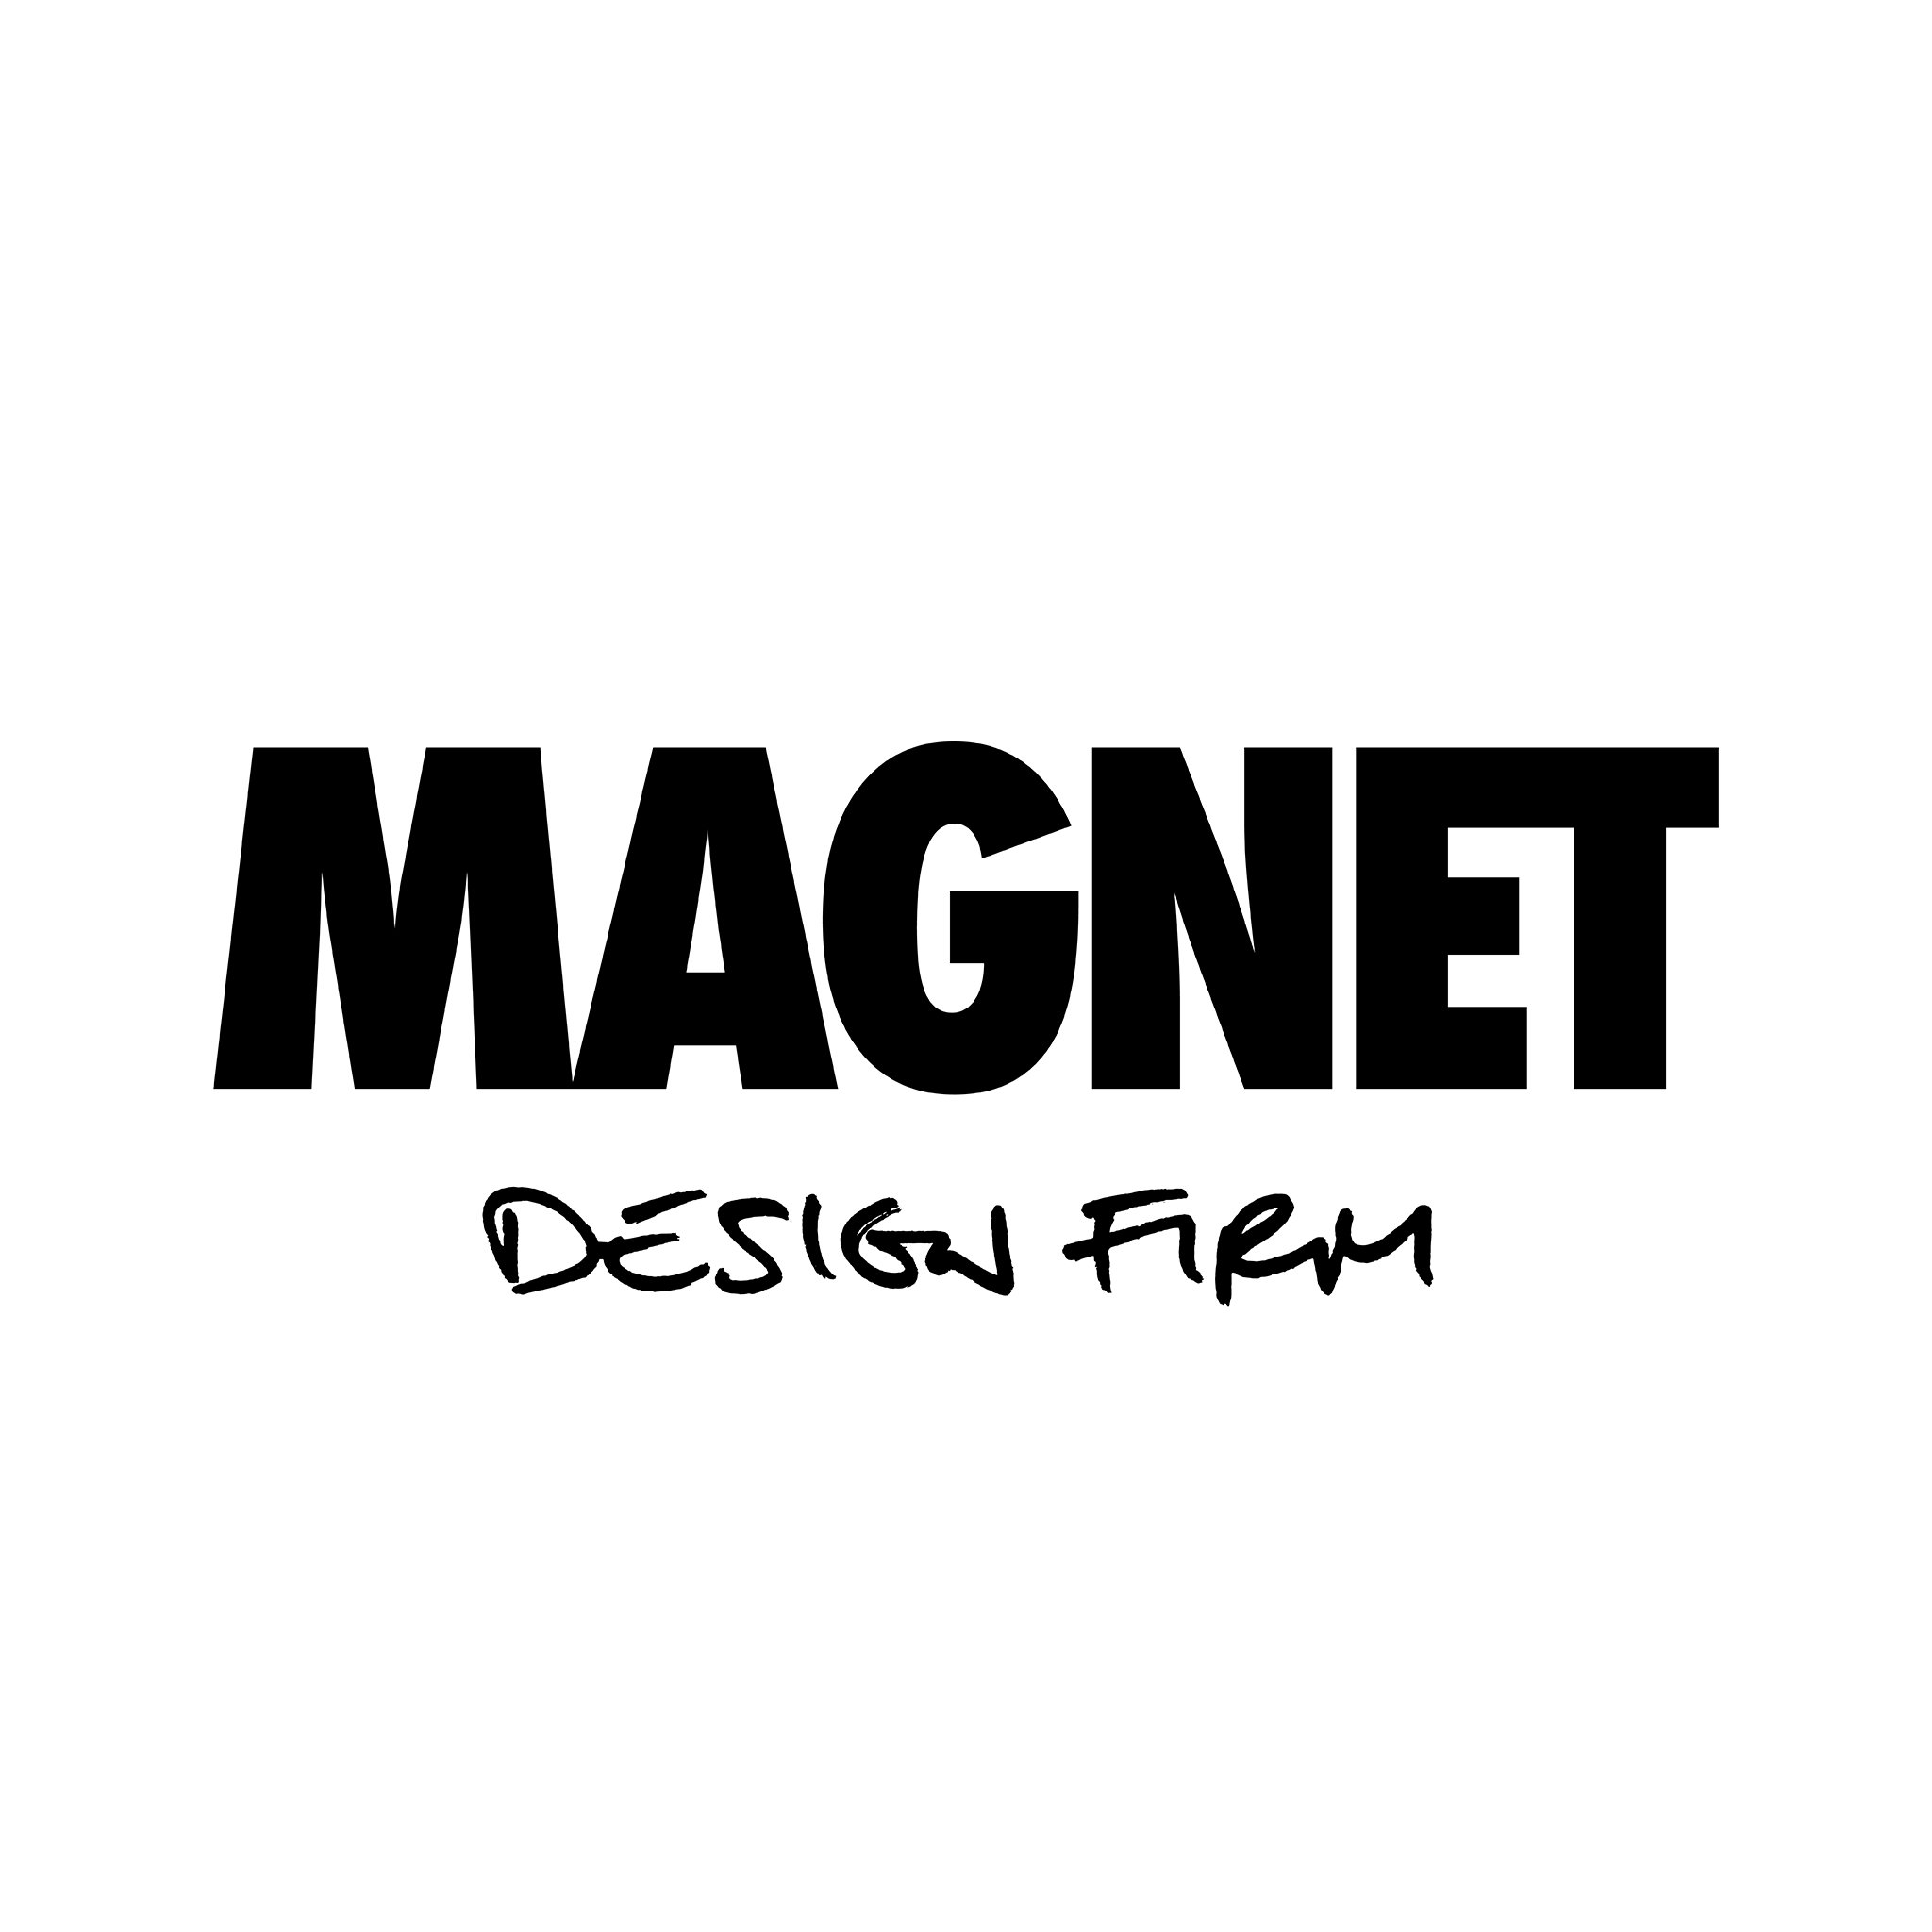 Magnet Design firm